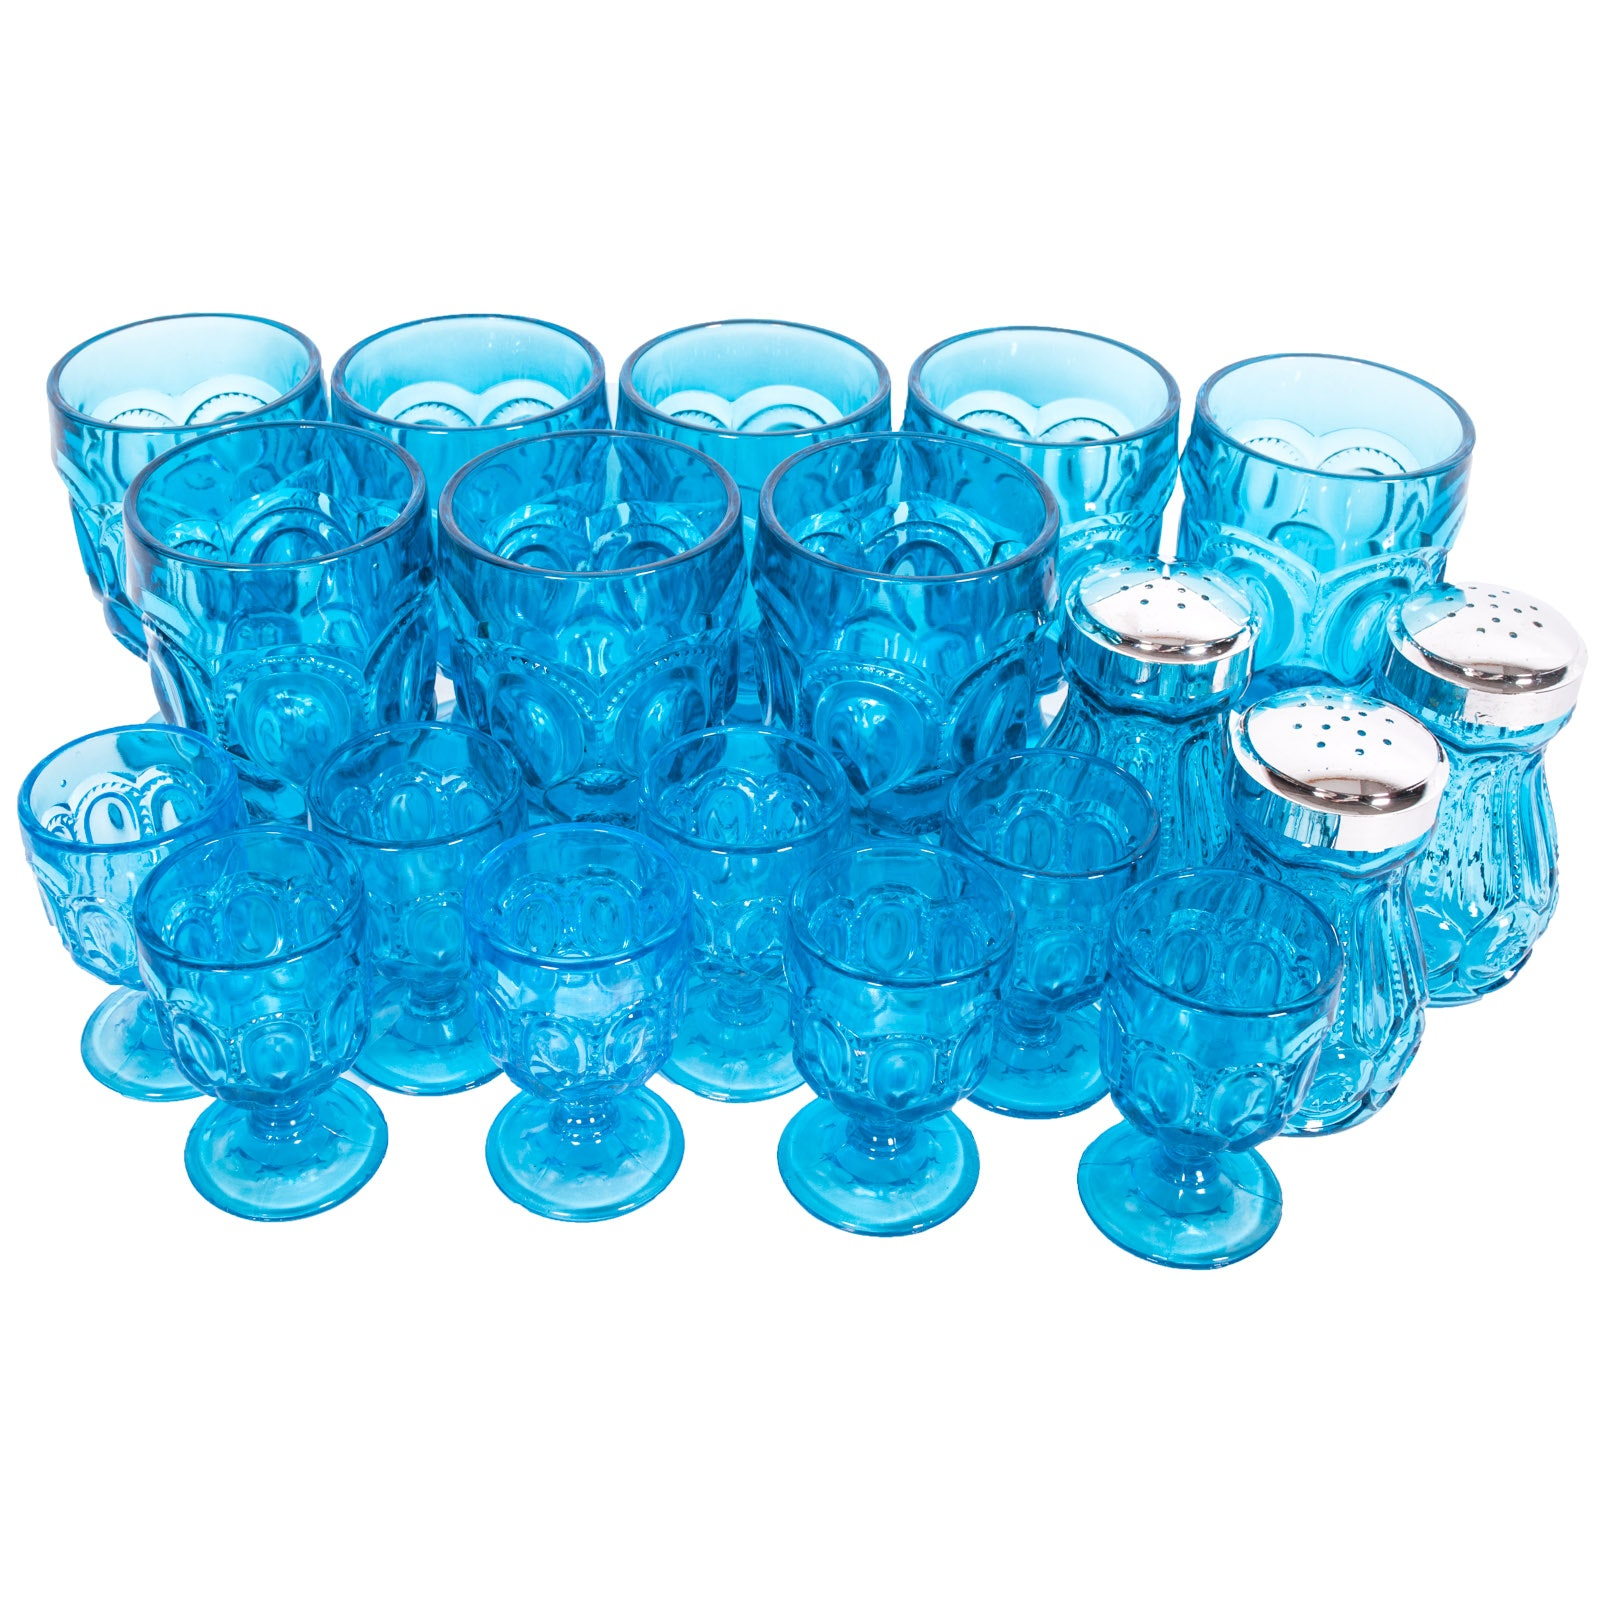 "L. E. Smith ""Moon and Stars"" Blue Glassware"